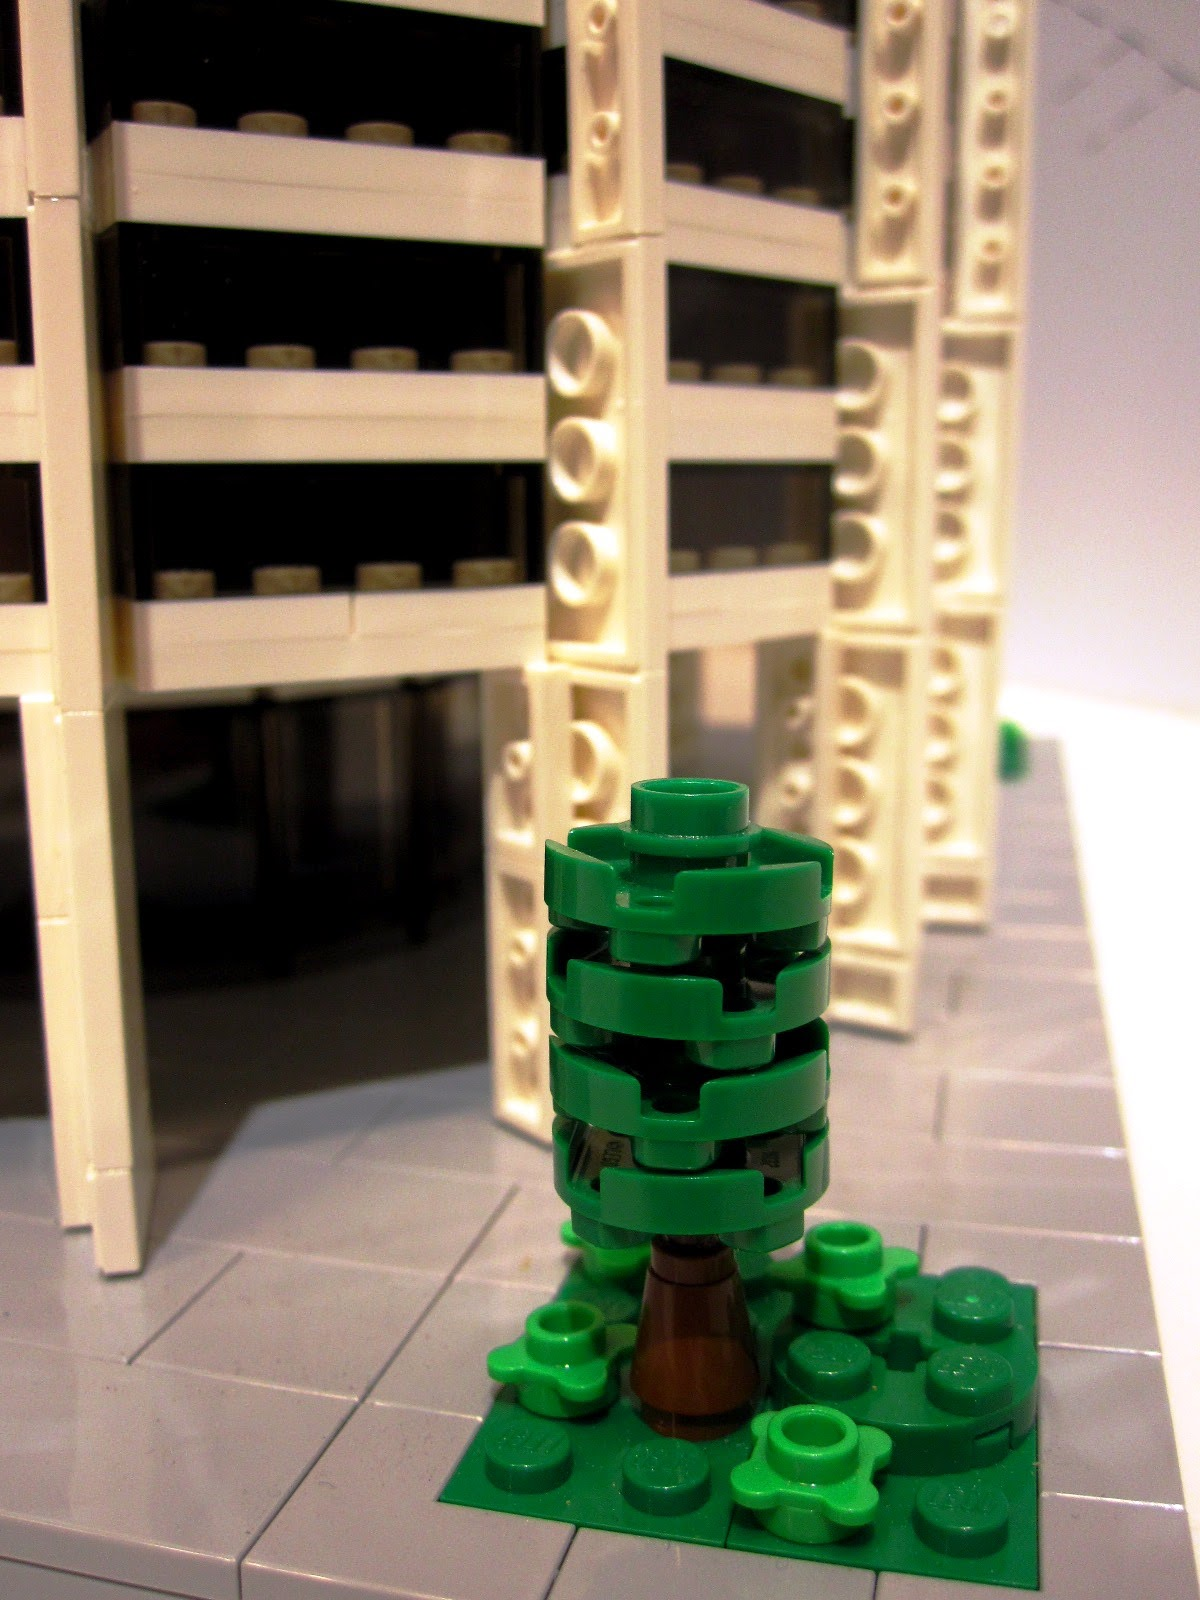 Close-up of a Lego tree at the base of a Lego model of Harry Seidler's Austraia Square.